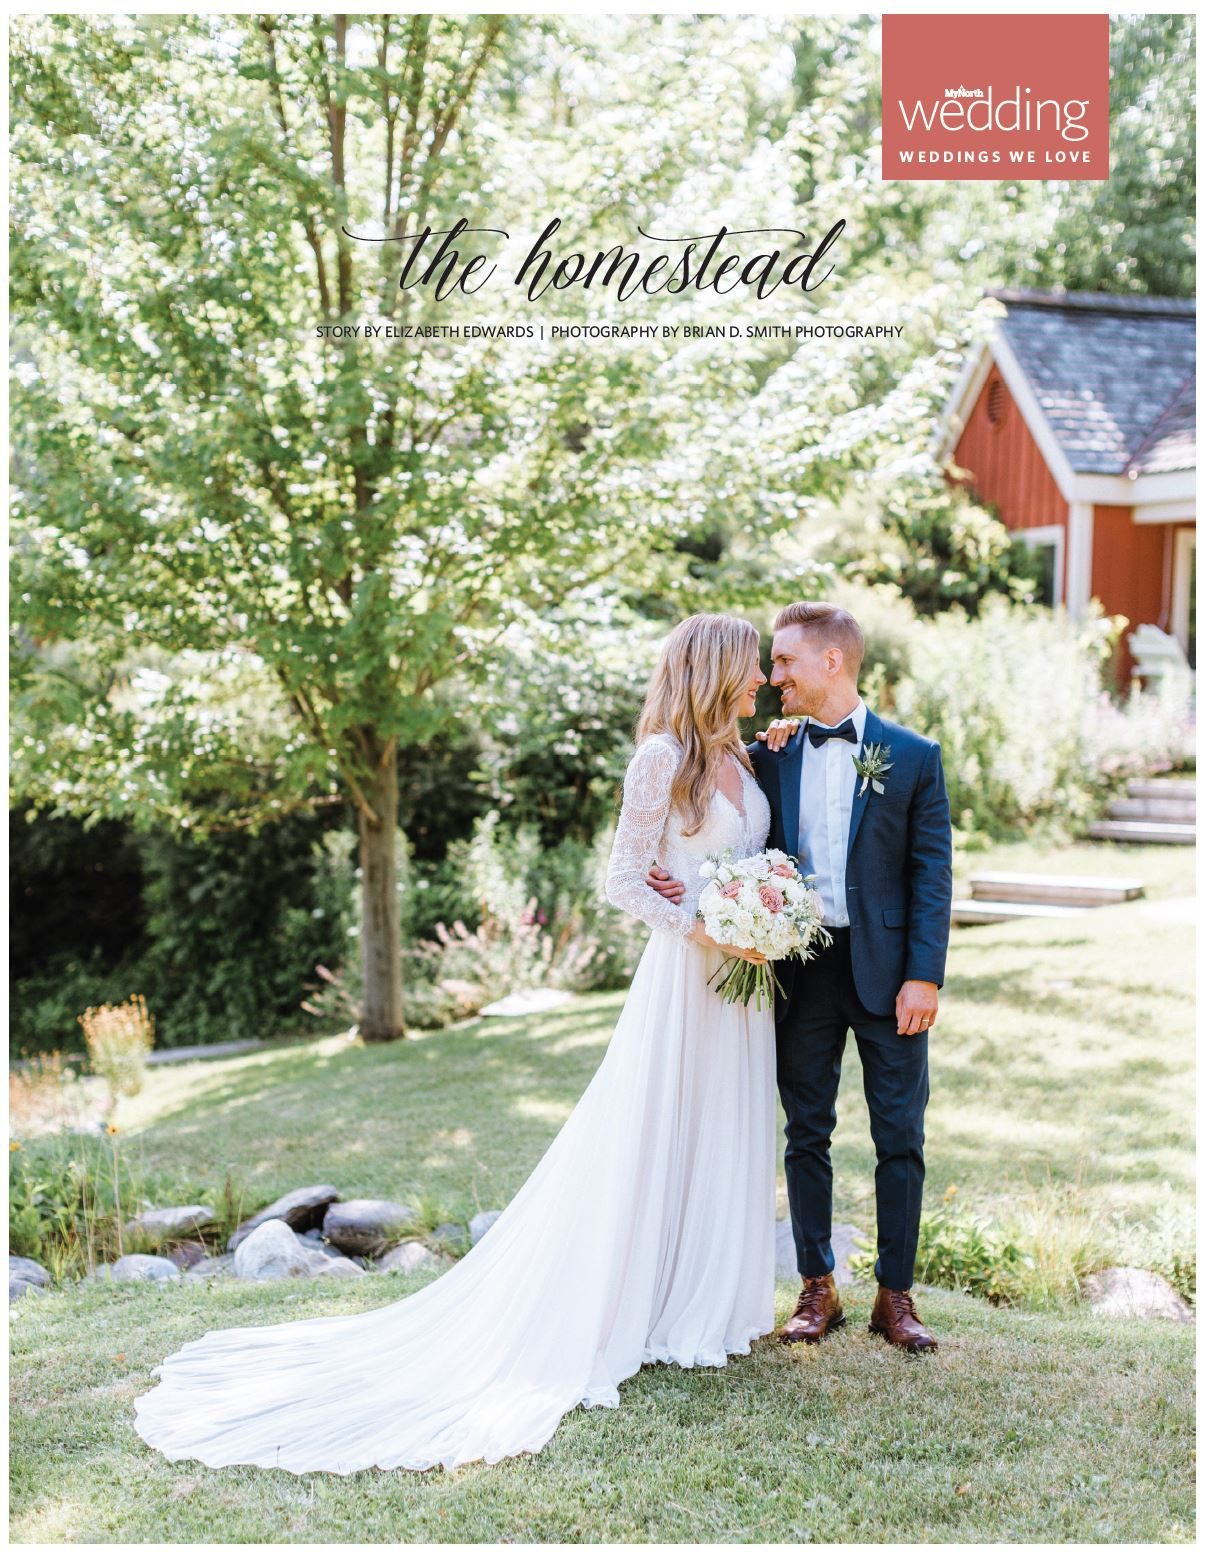 my north magazine northern michigan the homestead august summer wedding glen arbor photography publication